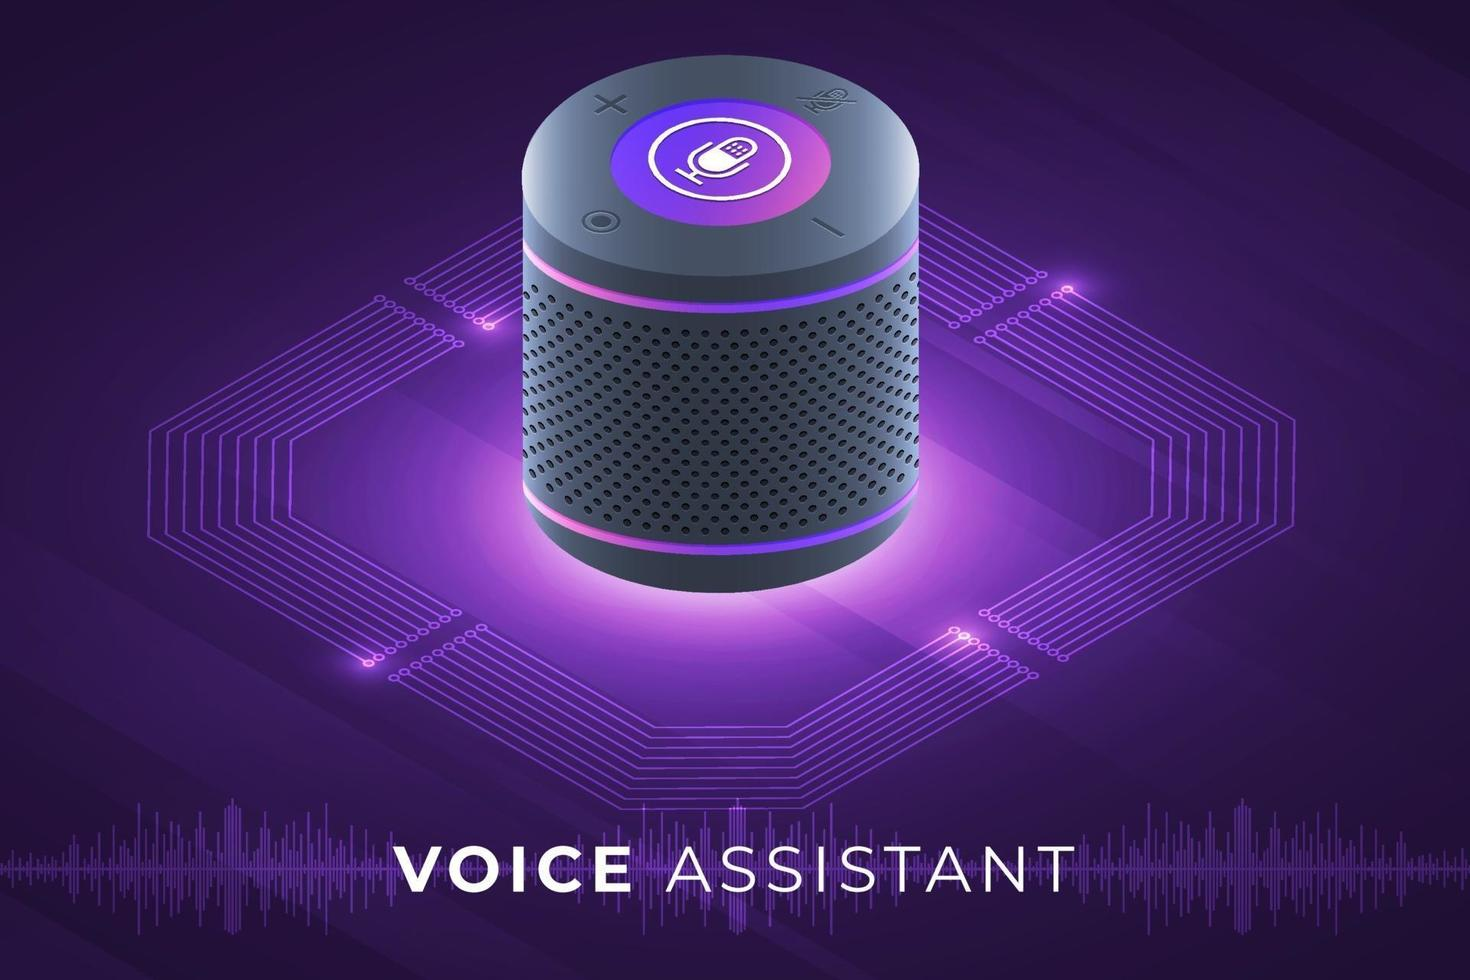 Voice assistant internet of things vector